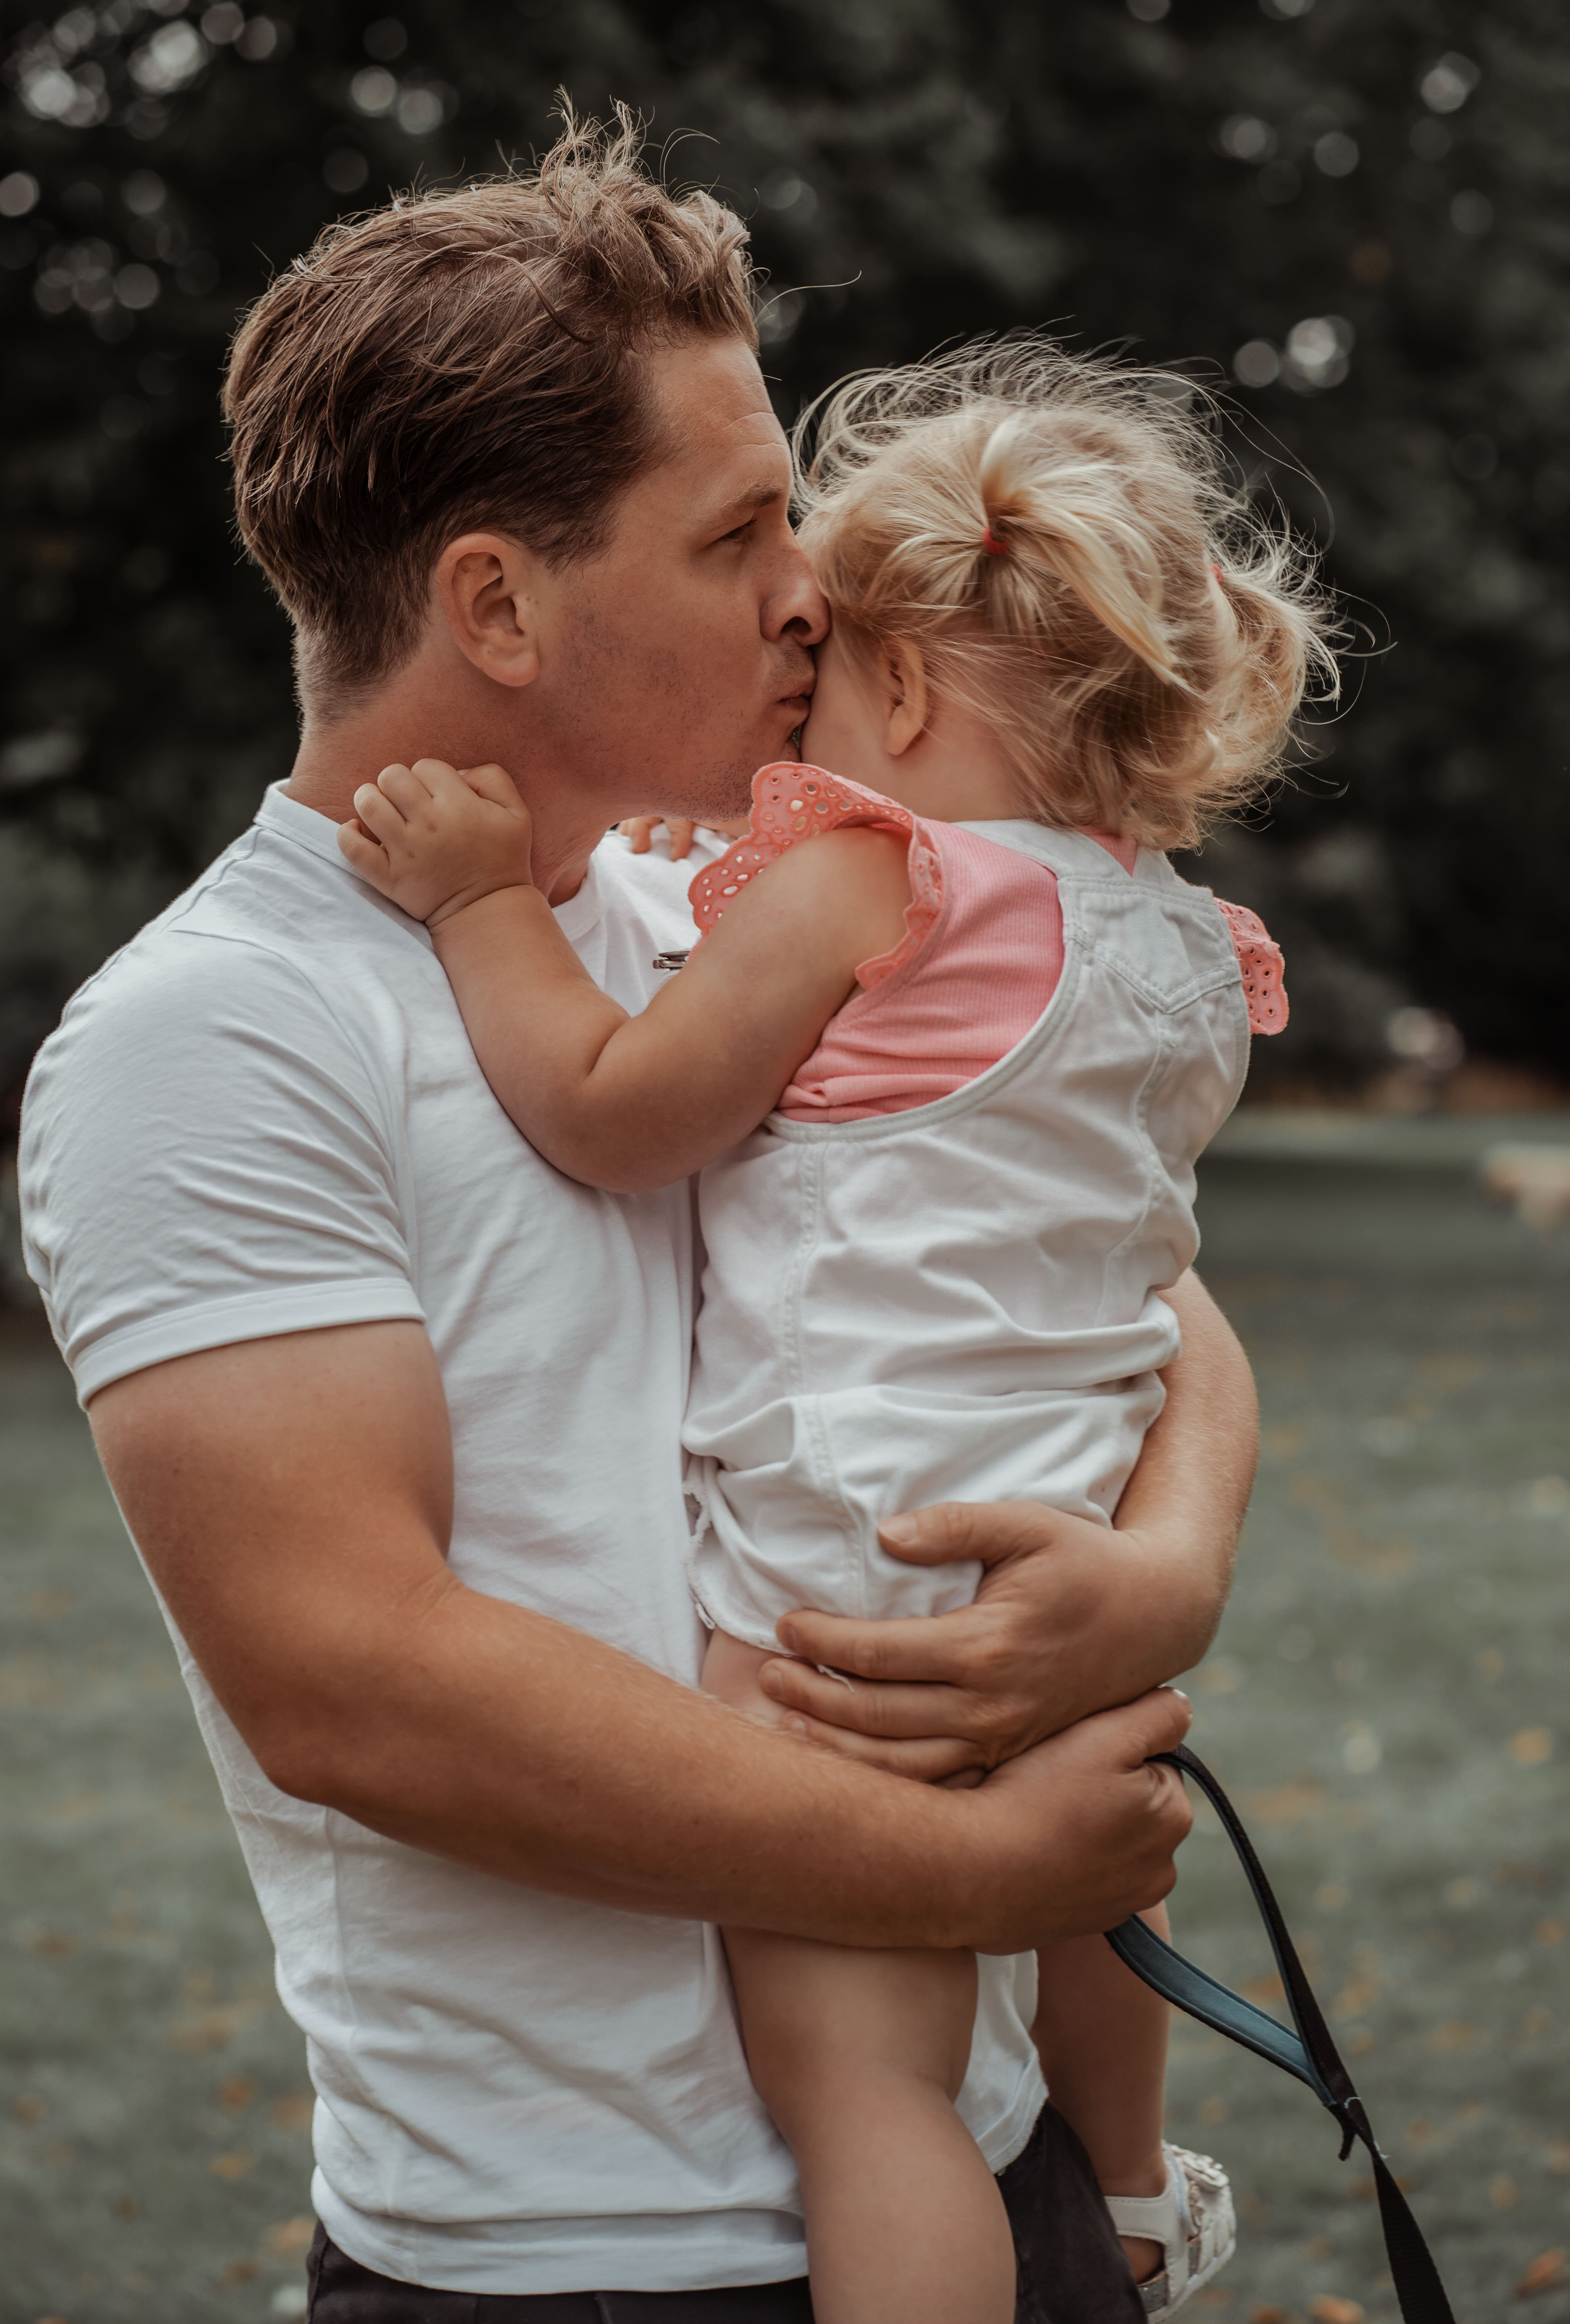 Daddy daughter photography